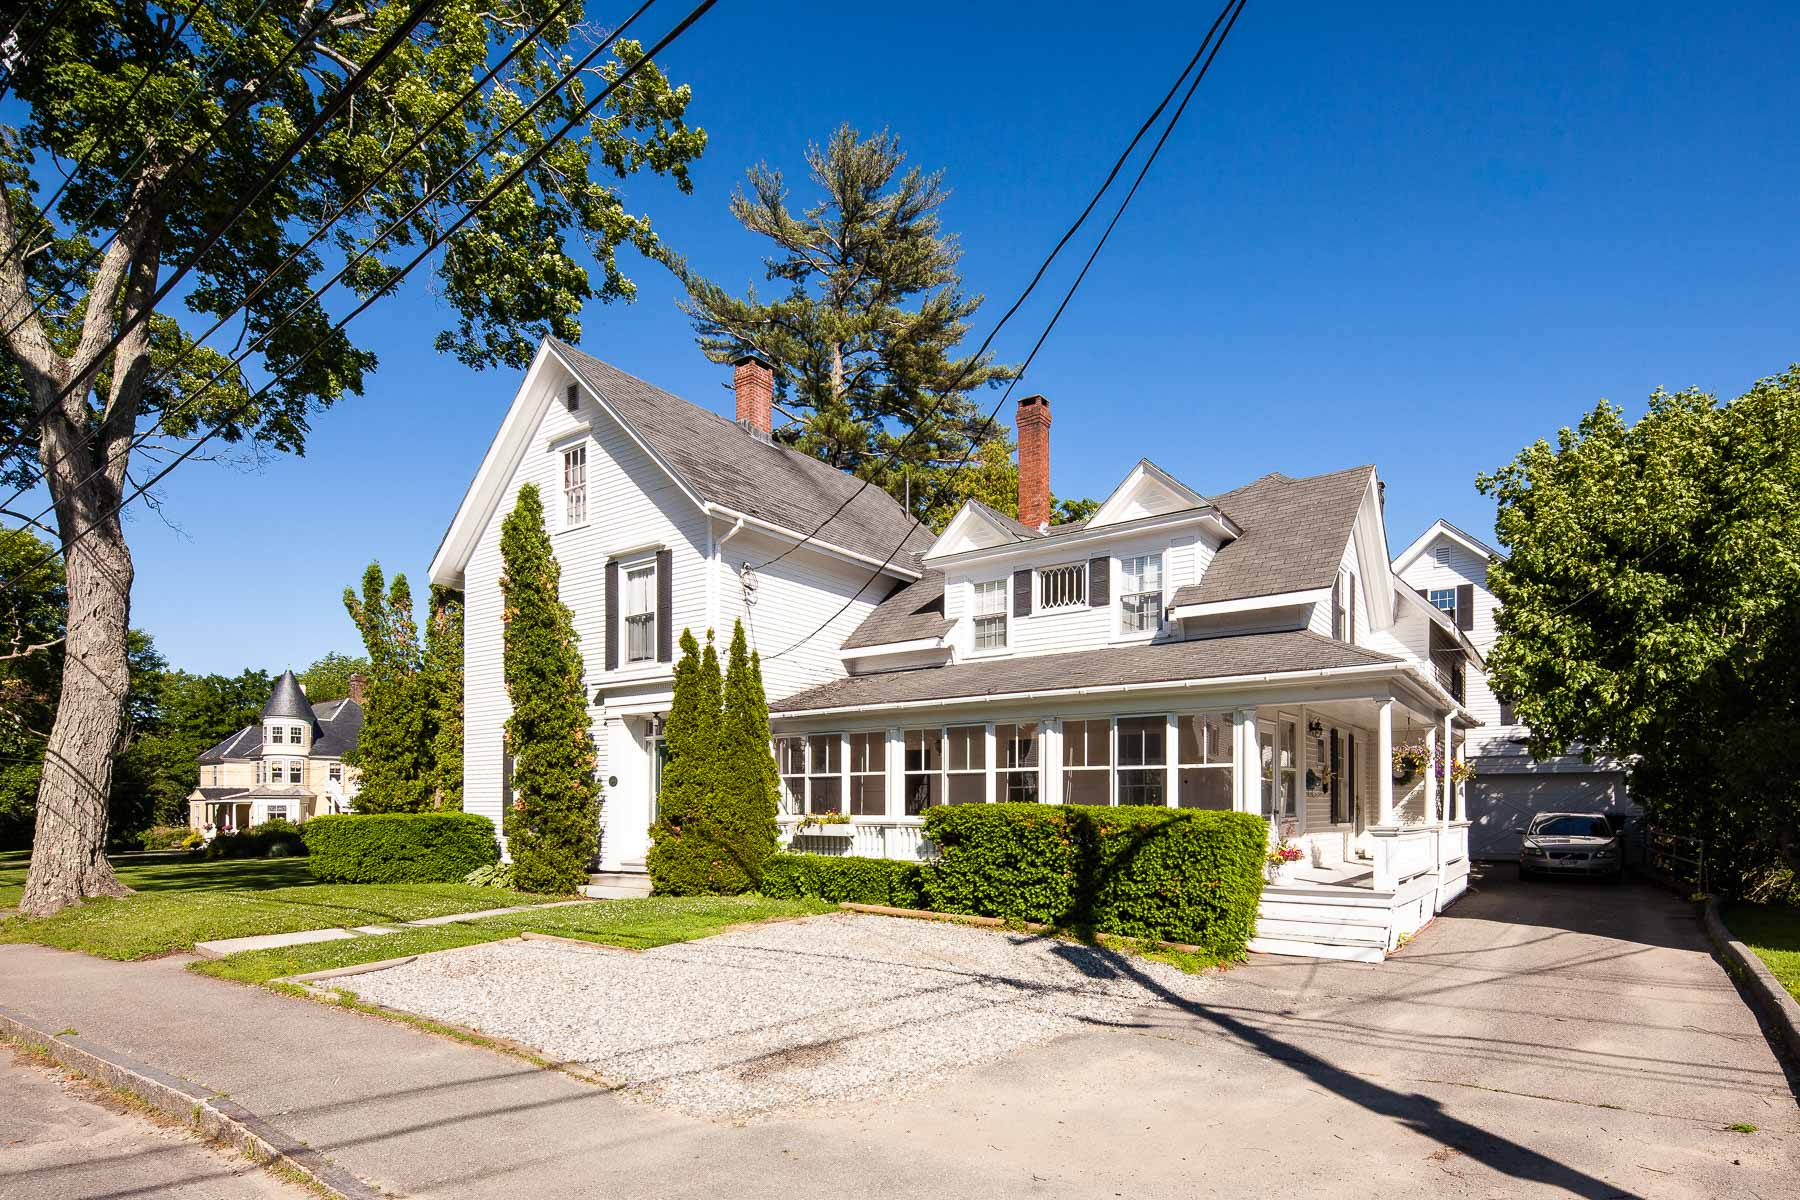 Multi-Family Home for Sale at 3 High Street Camden, Maine 04843 United States